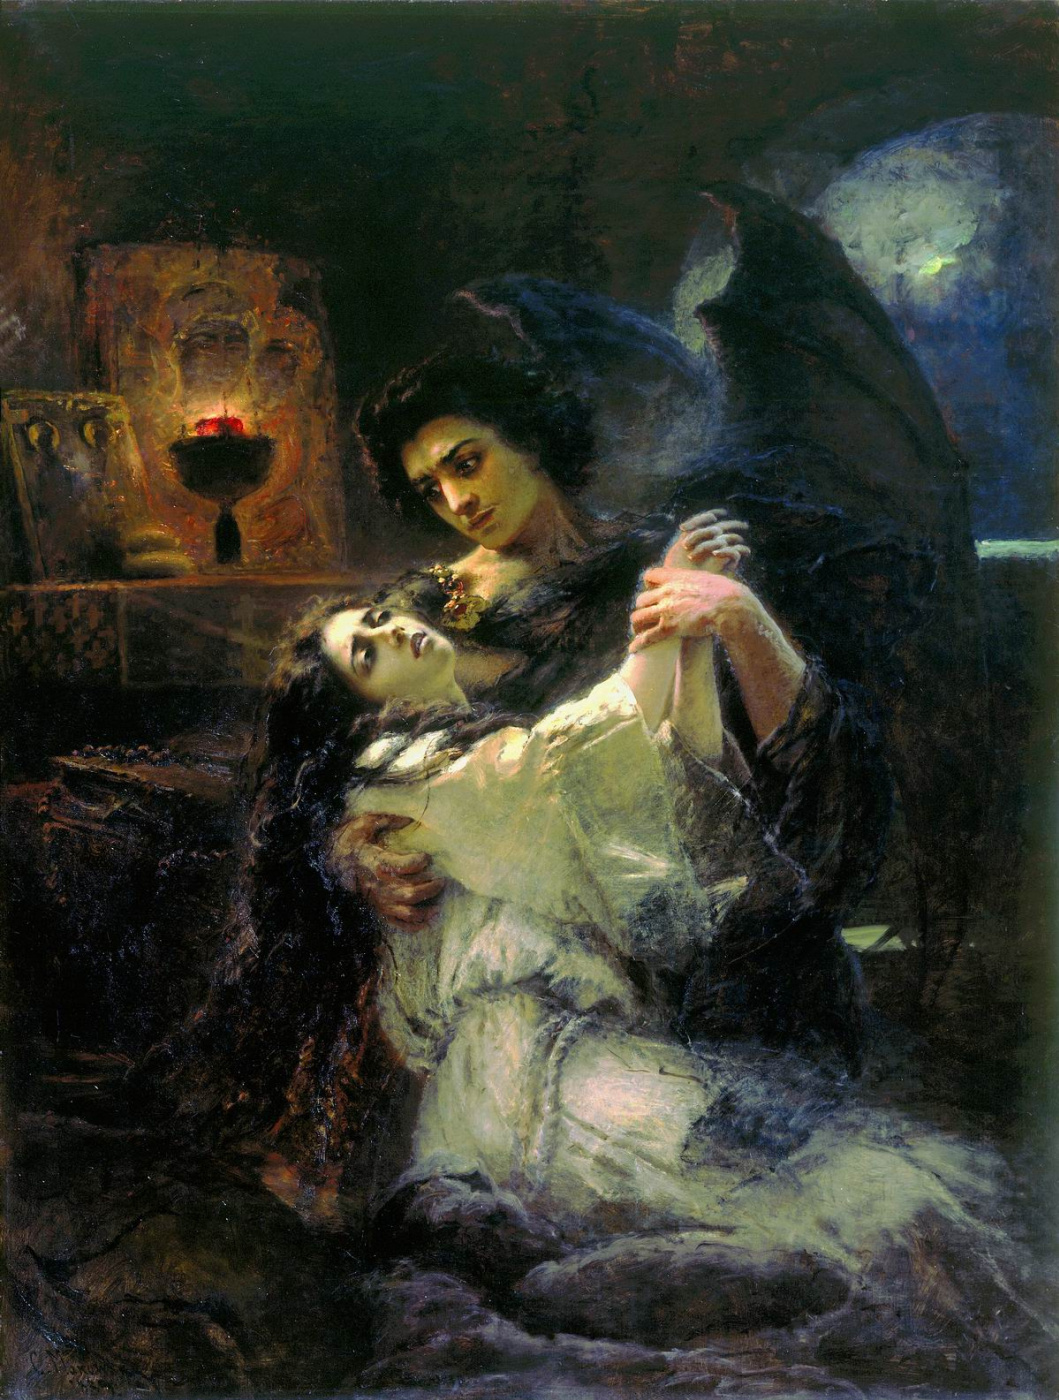 Konstantin Makovsky. Demon and Tamara